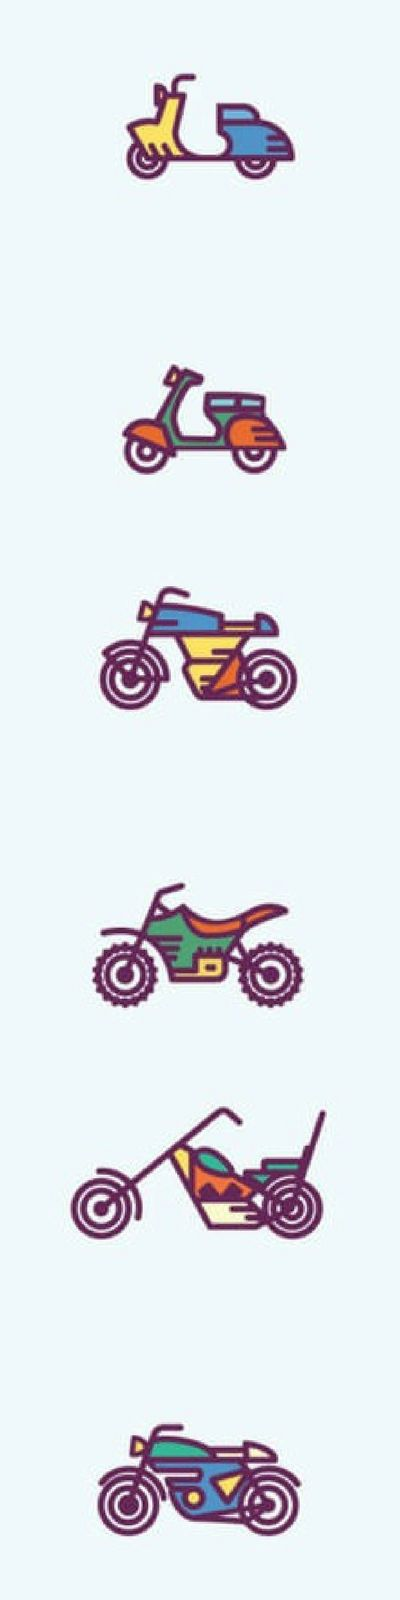 If you're looking for more than just the typical motorcycle icon, and want some fun options, then be sure to check out Dribble's Free Moto Icon Set. This one features a variety of moto-bikes that are fun and include movement. Free download via 4vector.com @4vector